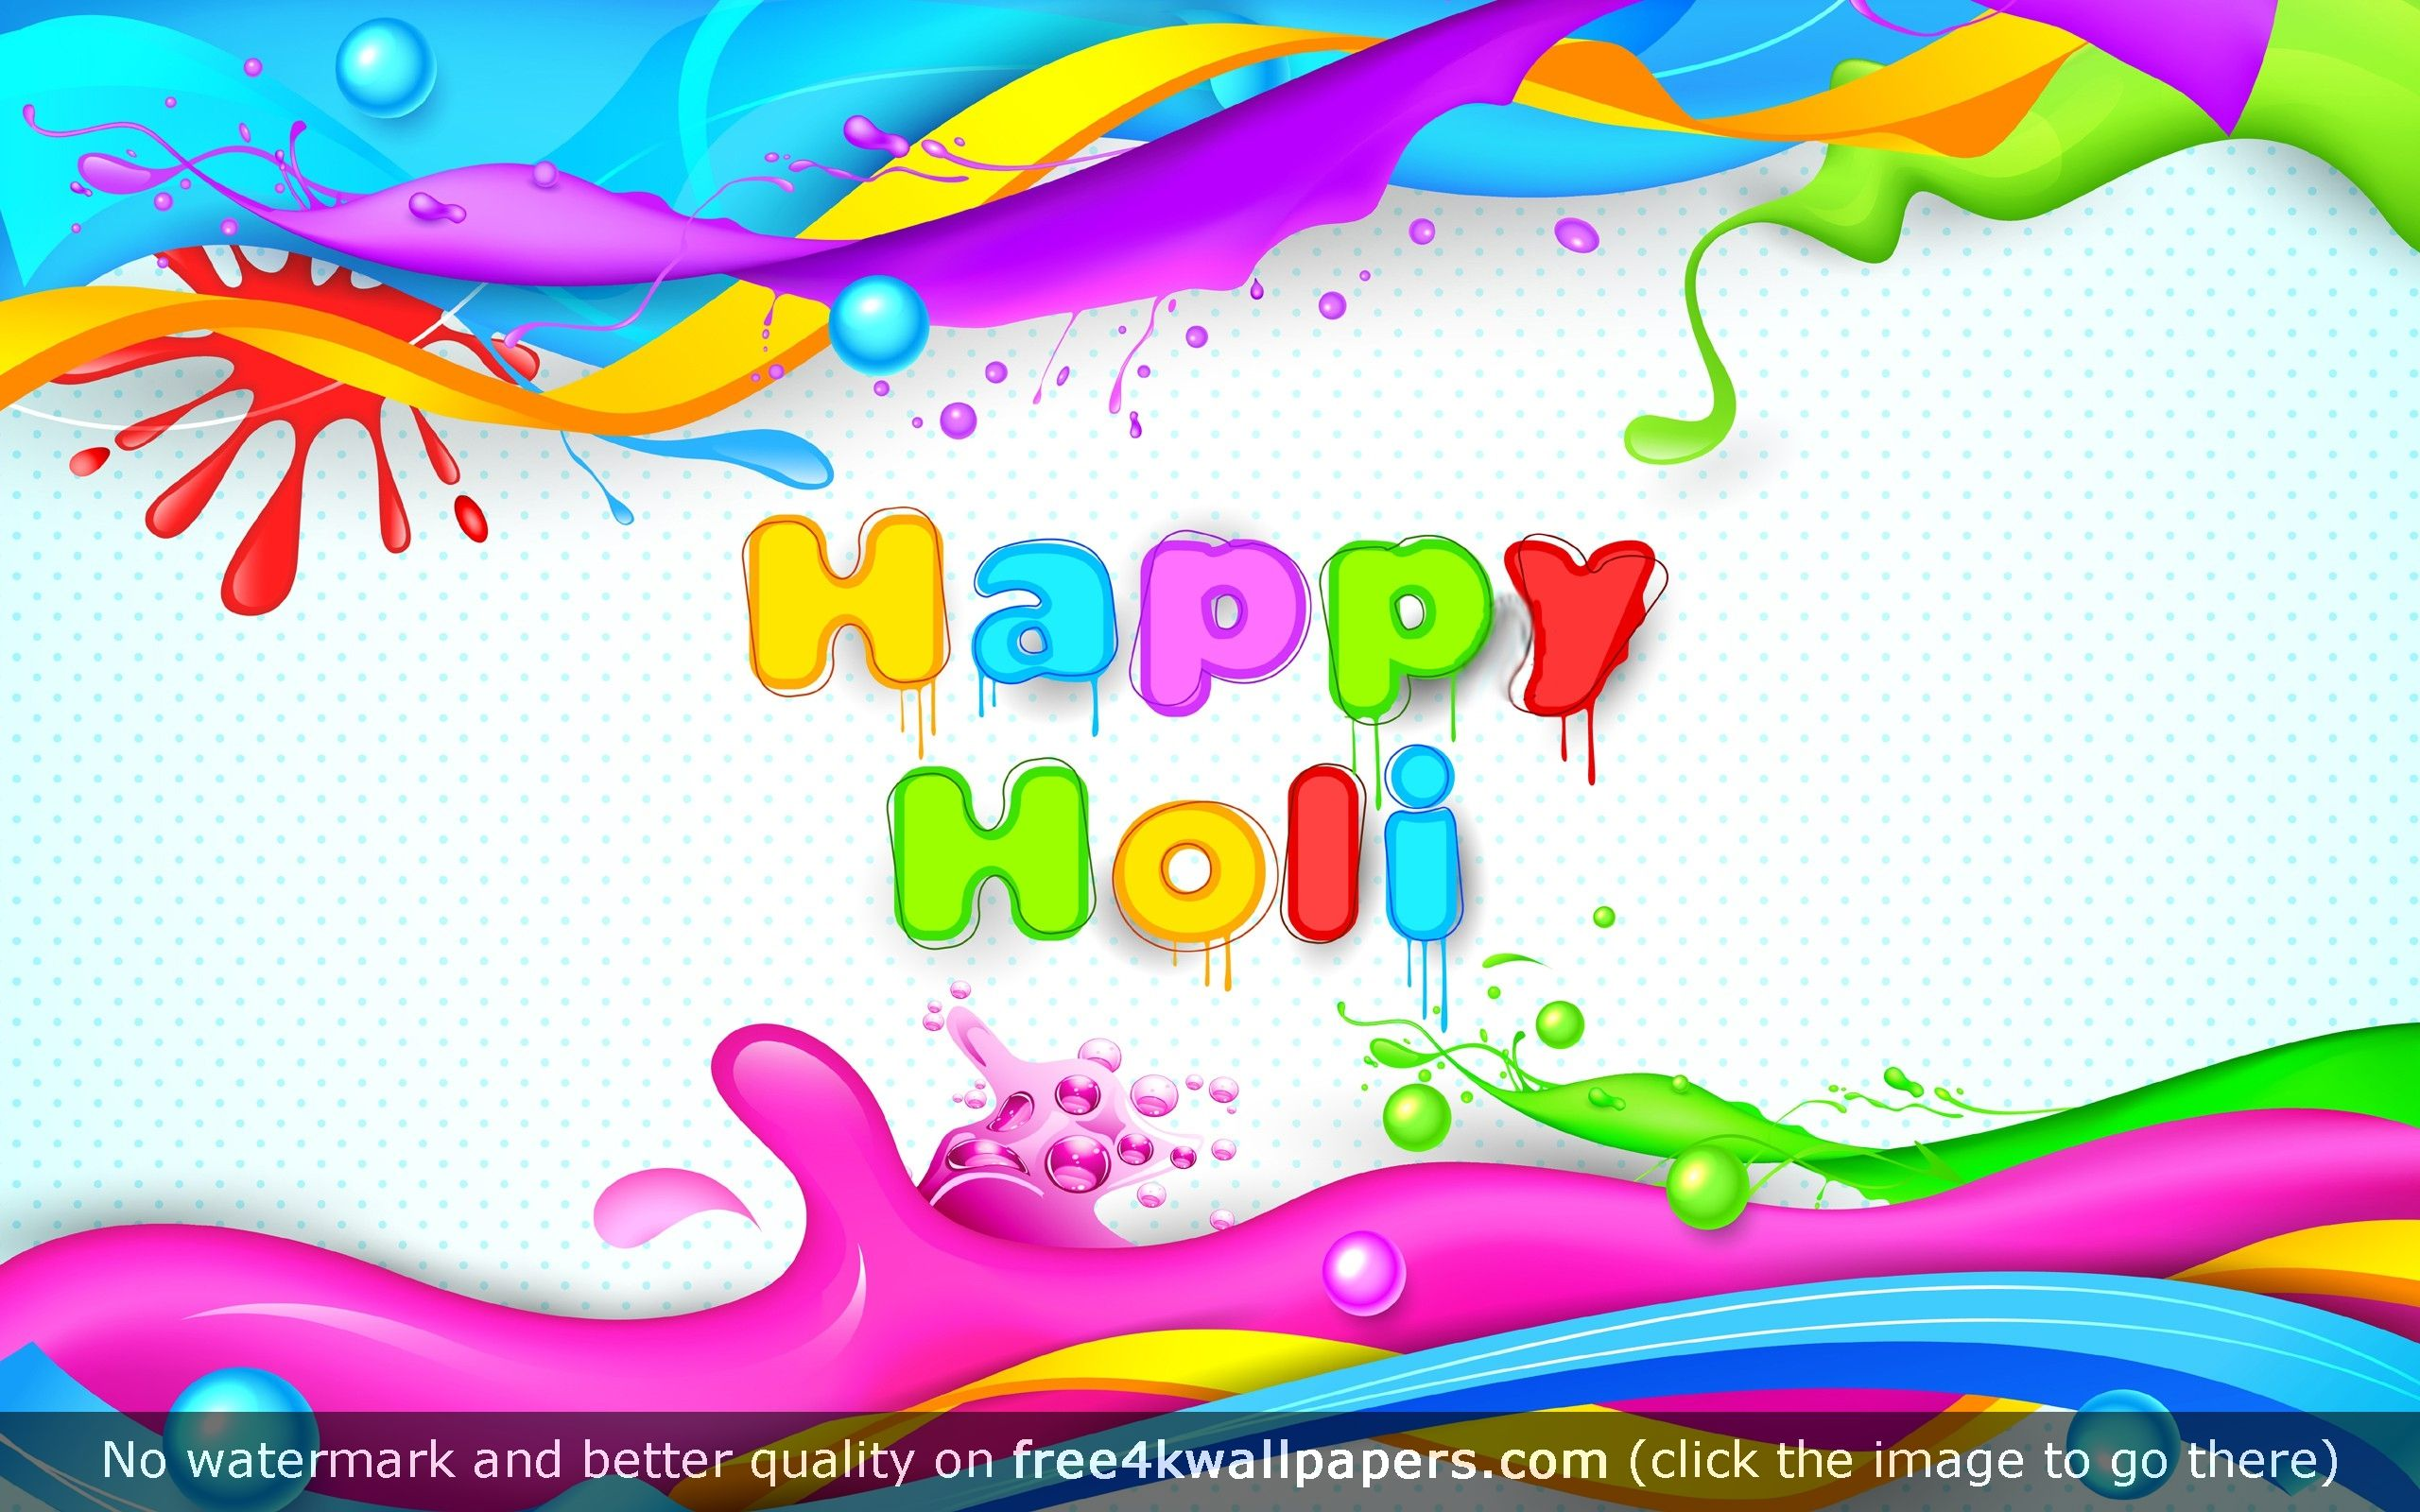 Happy Holi 4K or HD wallpaper for your PC Mac or Mobile device 2560x1600